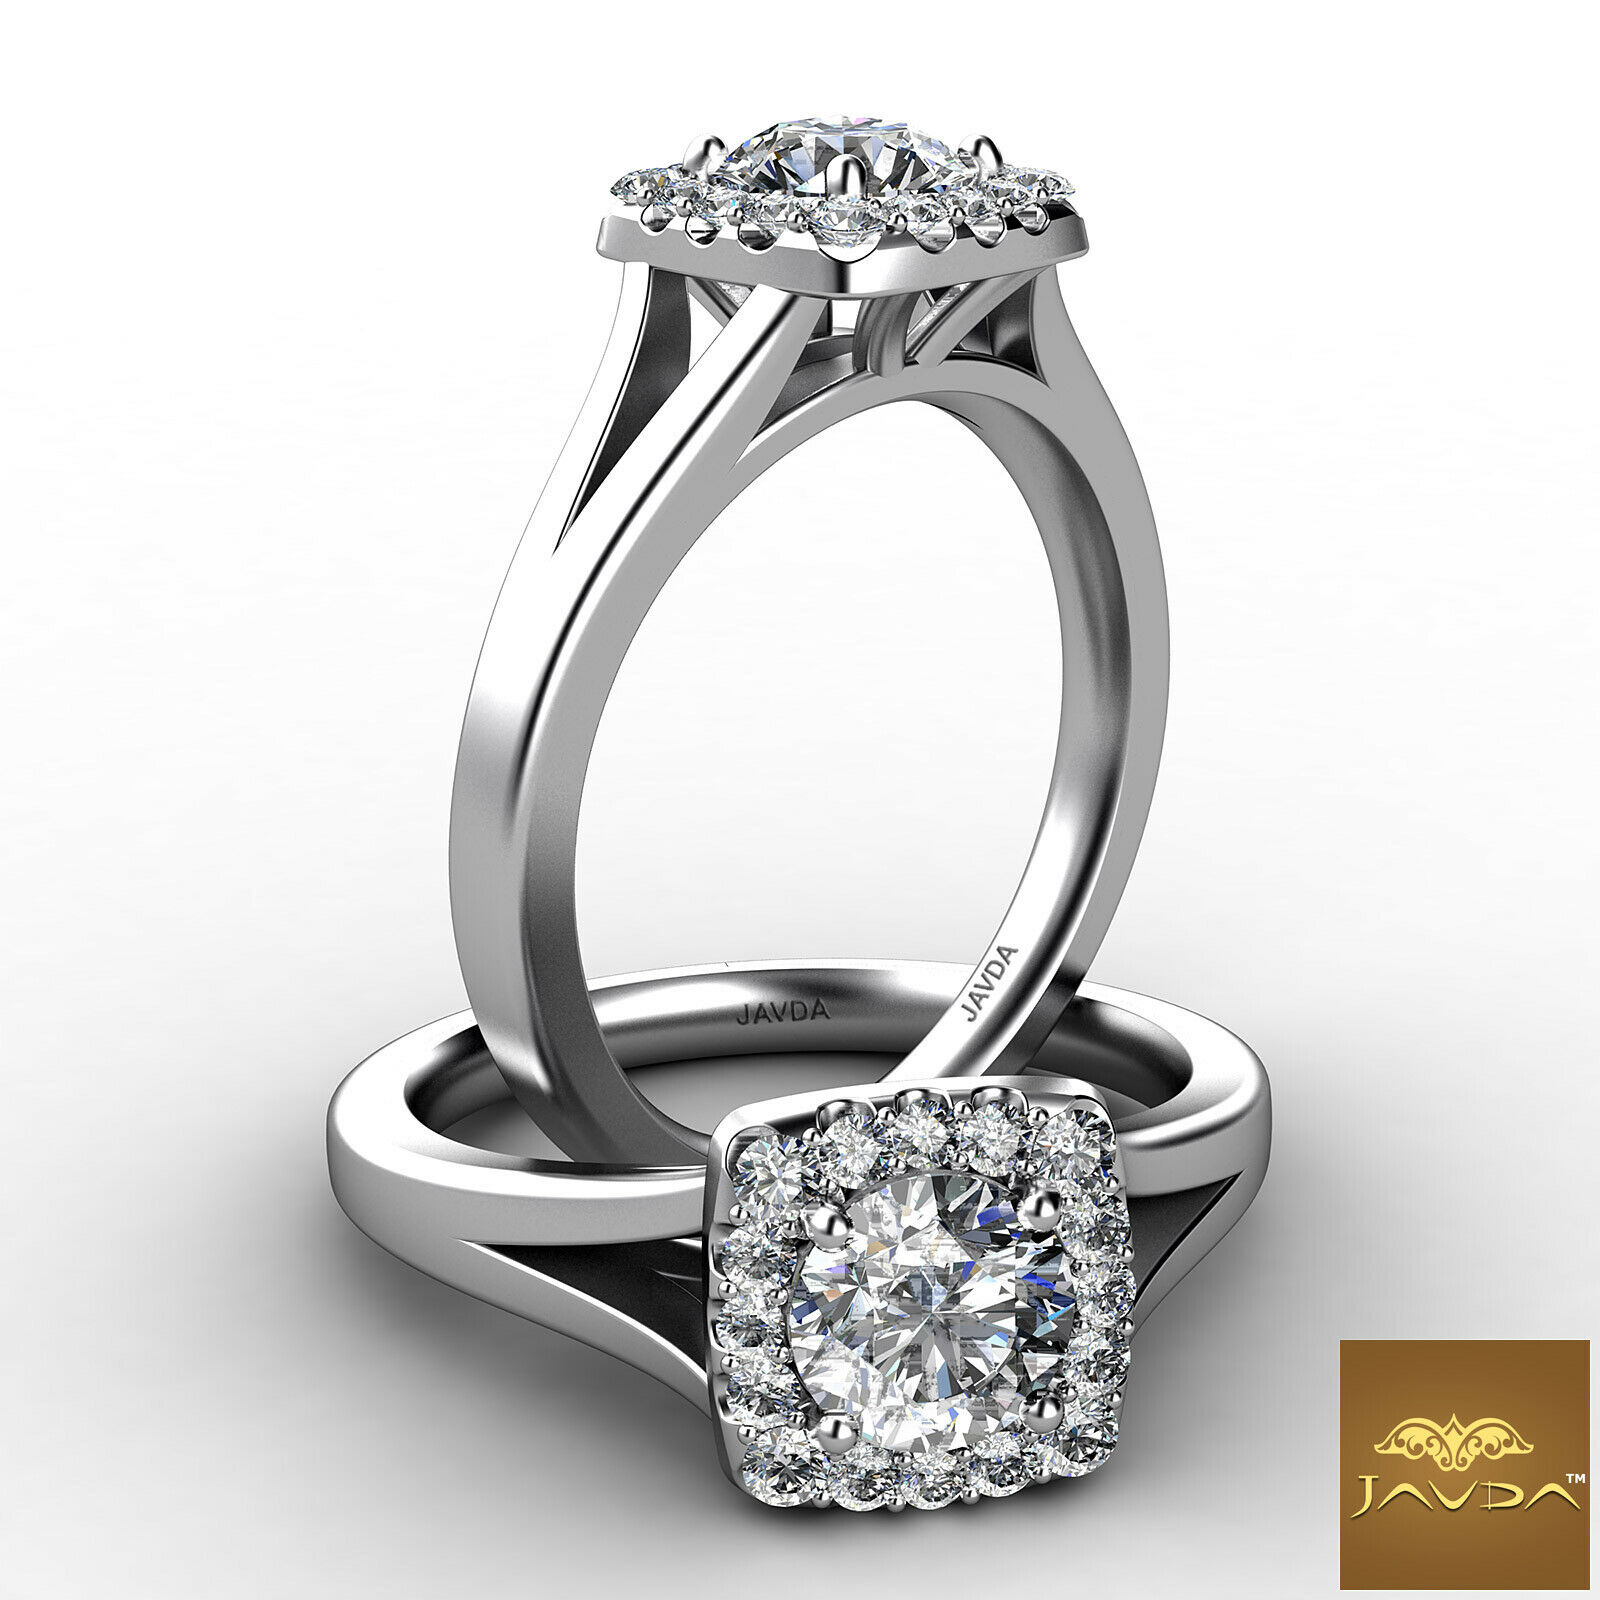 1.2ctw Halo Split Shank Cathedral Round Diamond Engagement Ring GIA J-VS2 W Gold